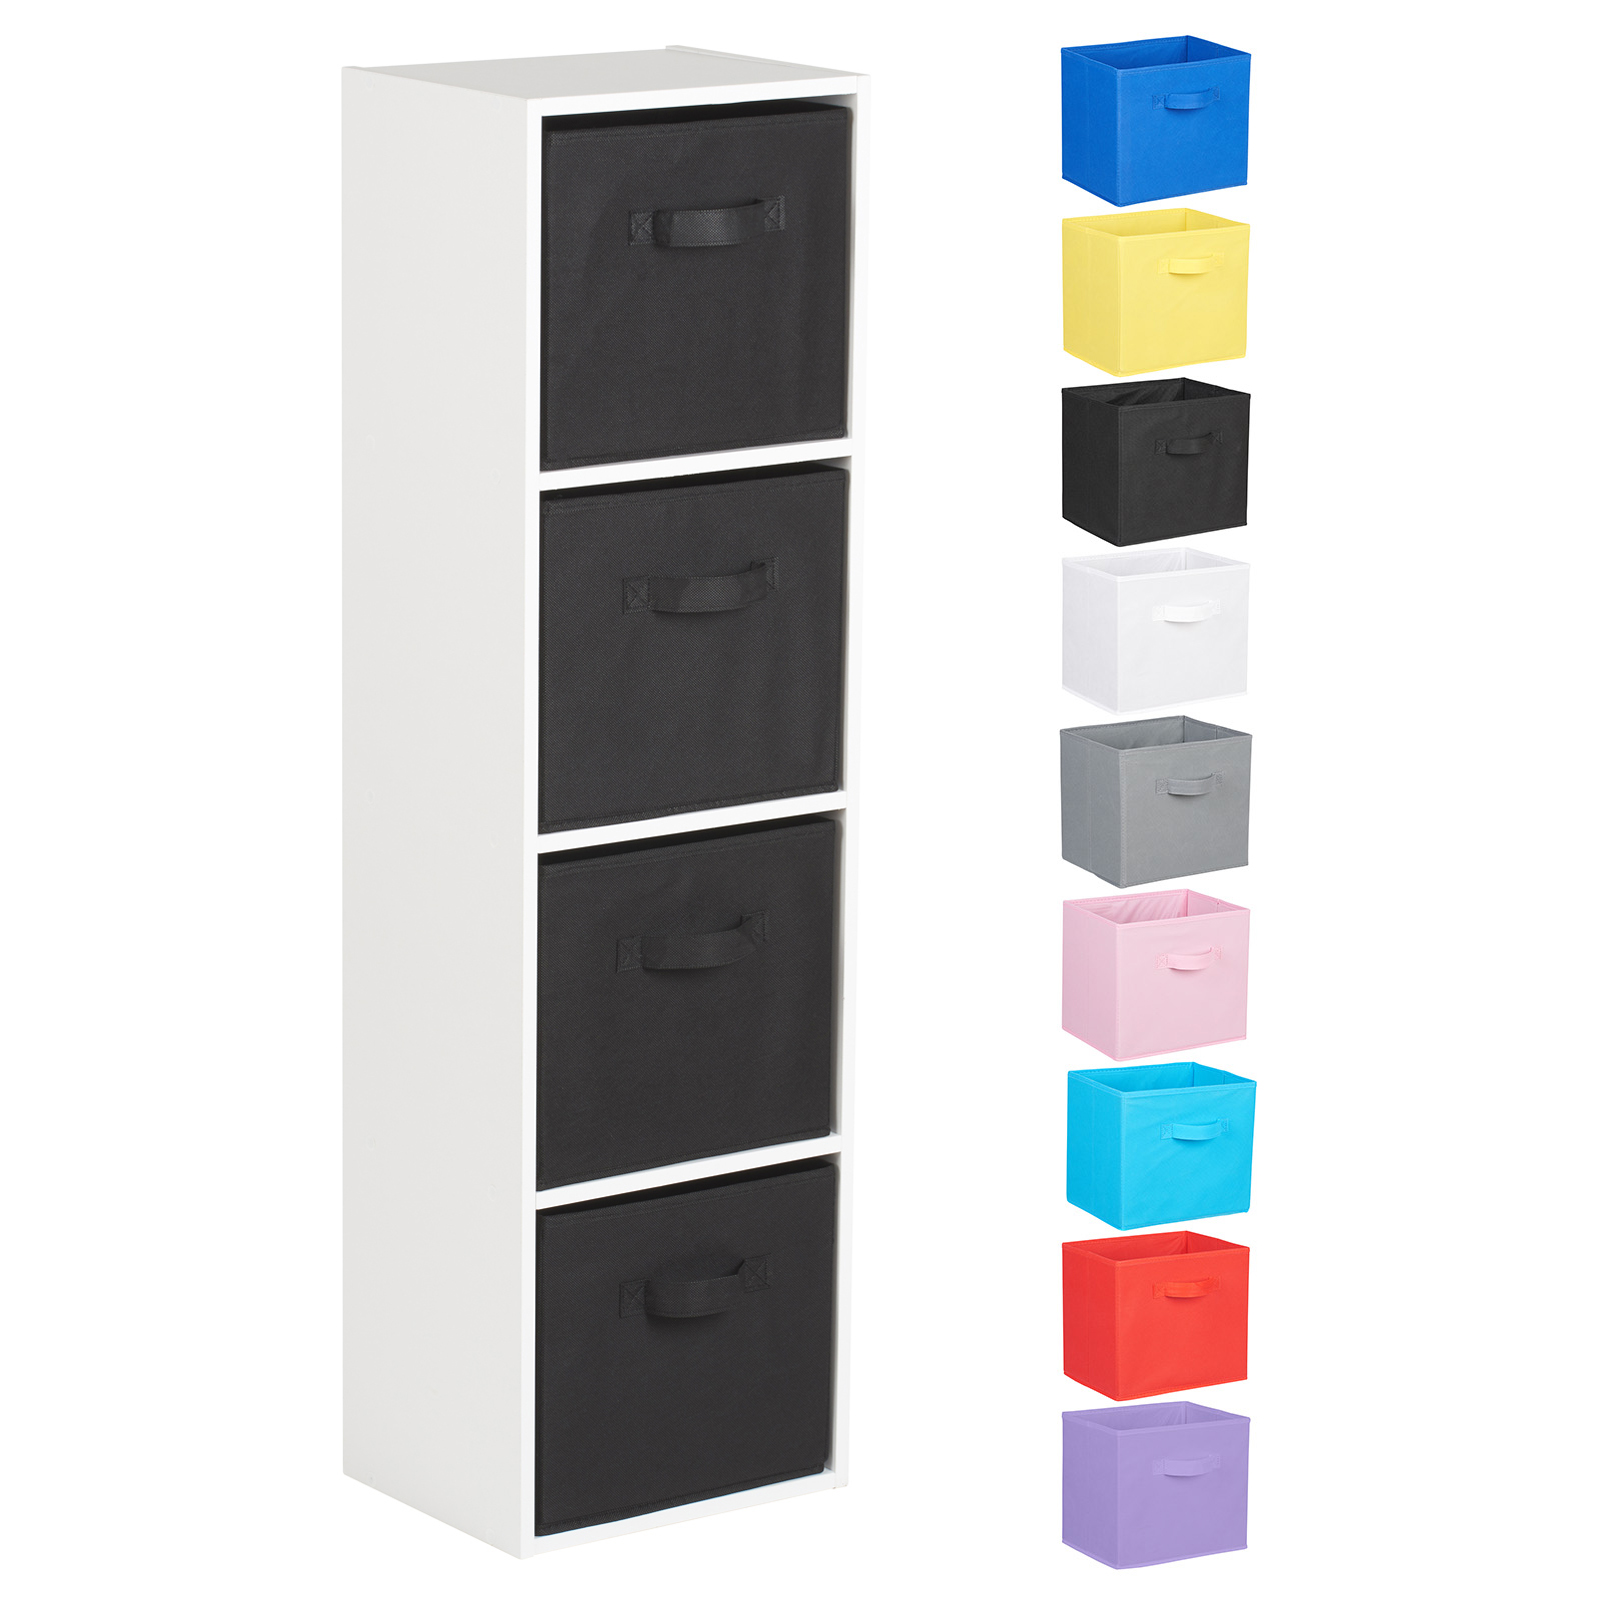 Hartleys-4-Tier-White-Bookcase-Wooden-Display-Shelving-Unit-amp-Fabric-Storage-Box thumbnail 9